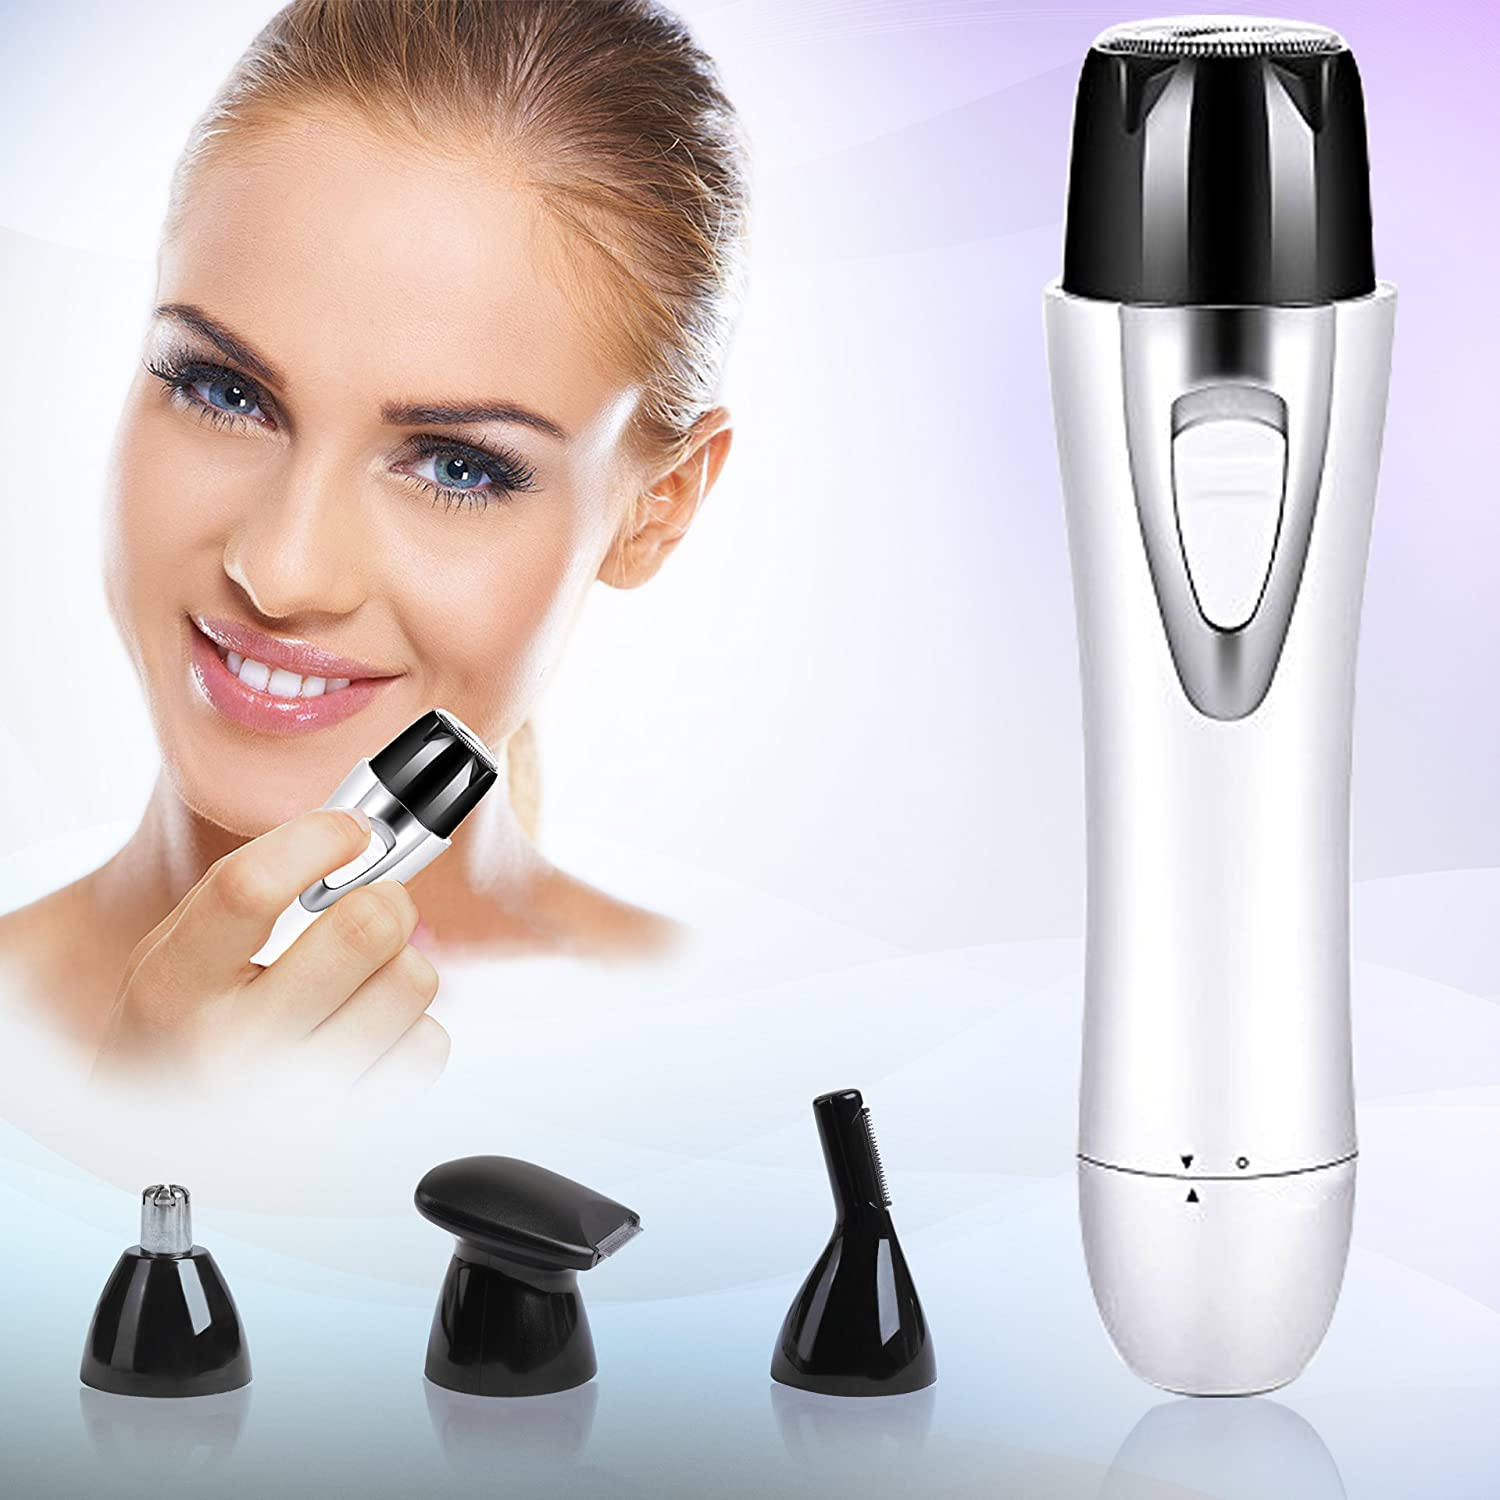 Mini Portable Hair remover/Painless Facial Hair Removal/Rechargeable Nose& Eyebrow Bikini Trimmer/Electric Shaver with Built-in charge cable& 4 Functional Razors for Women& Men, Lipstick Design by Binzim PLYRFOCE